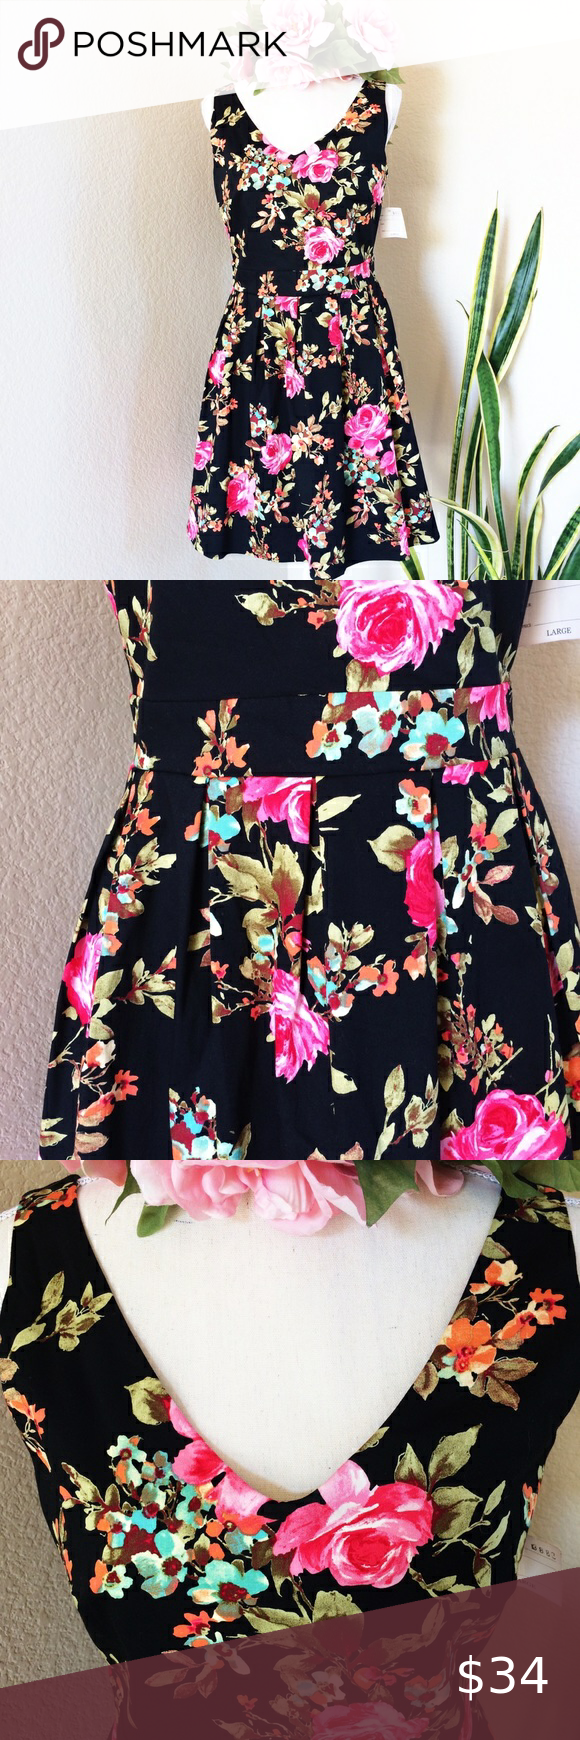 Ixia Black W Pink Floral Design Dress Sz Lg New Black Sleeveless Dress With Pink Flowers And Form Fitting Dress Vintage Style Dresses Clothes Design [ 1740 x 580 Pixel ]